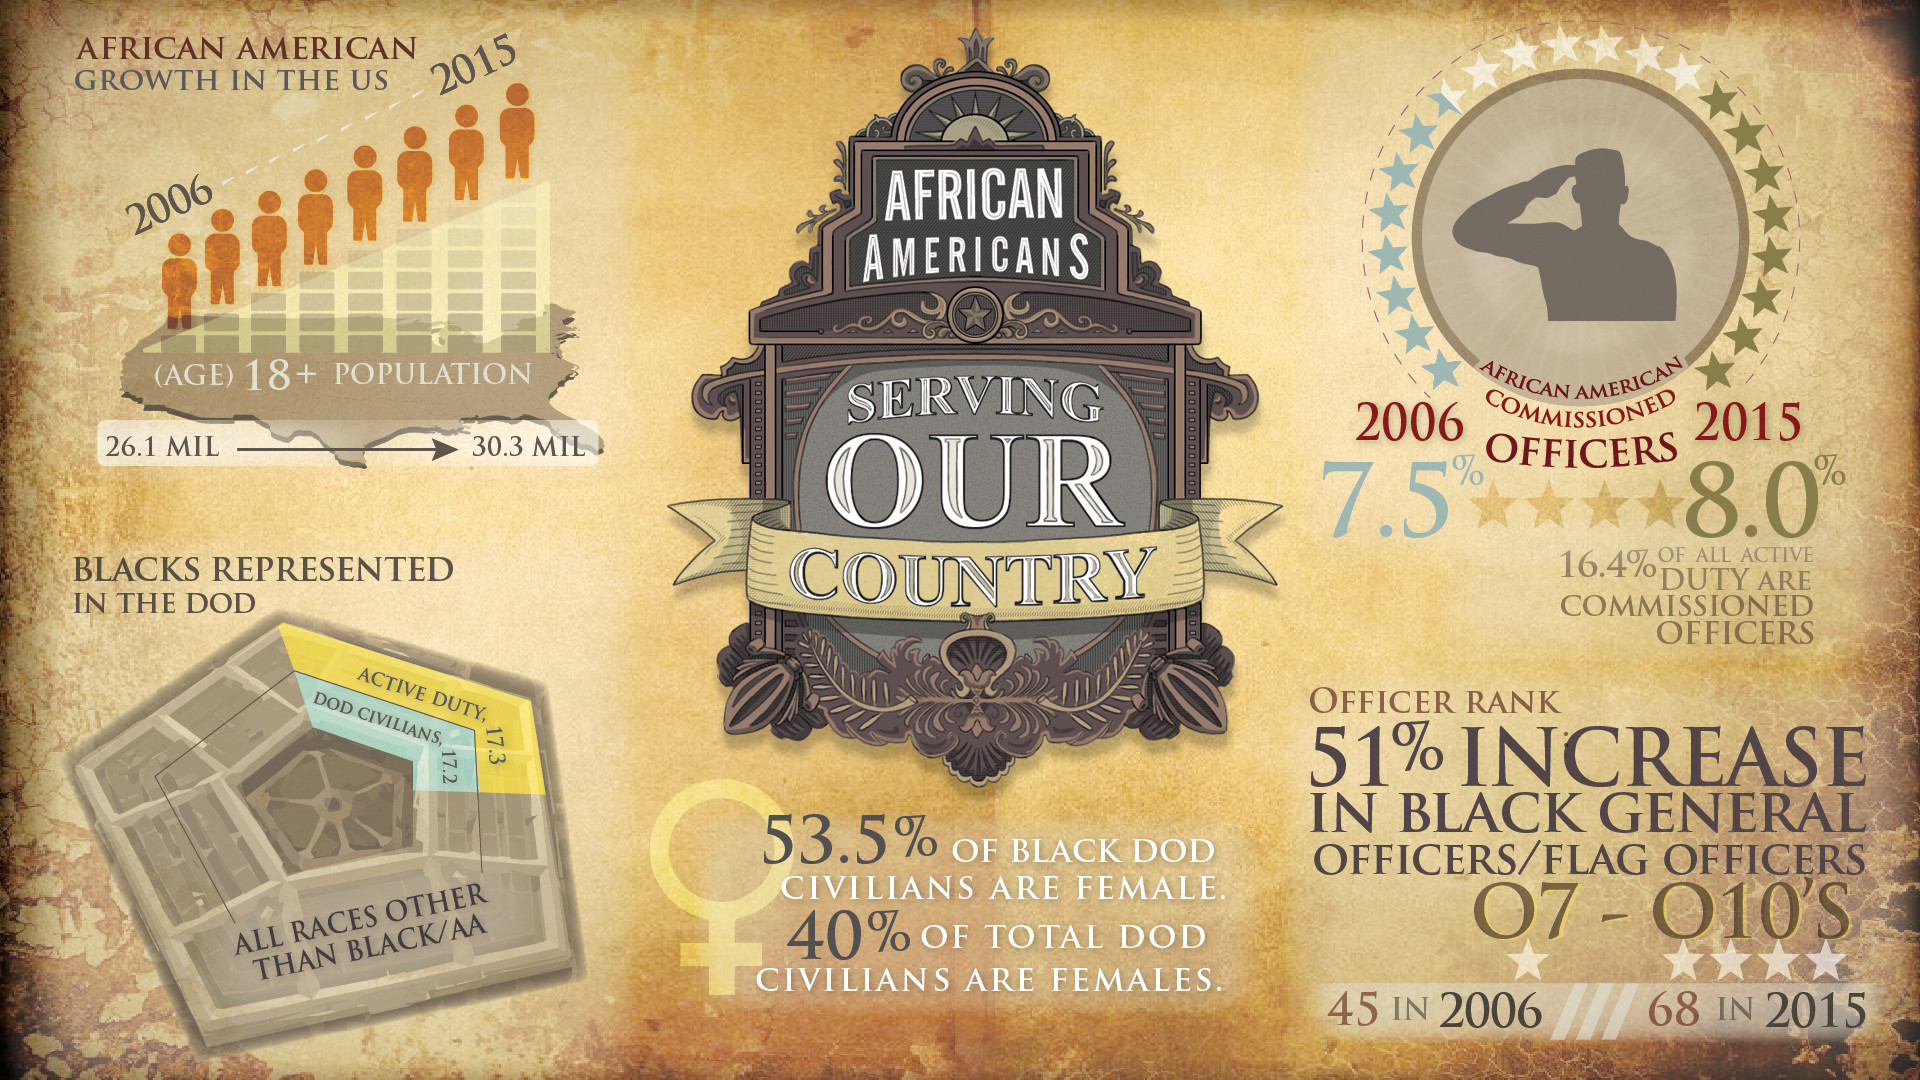 1920x1080 African Americans: By the Numbers